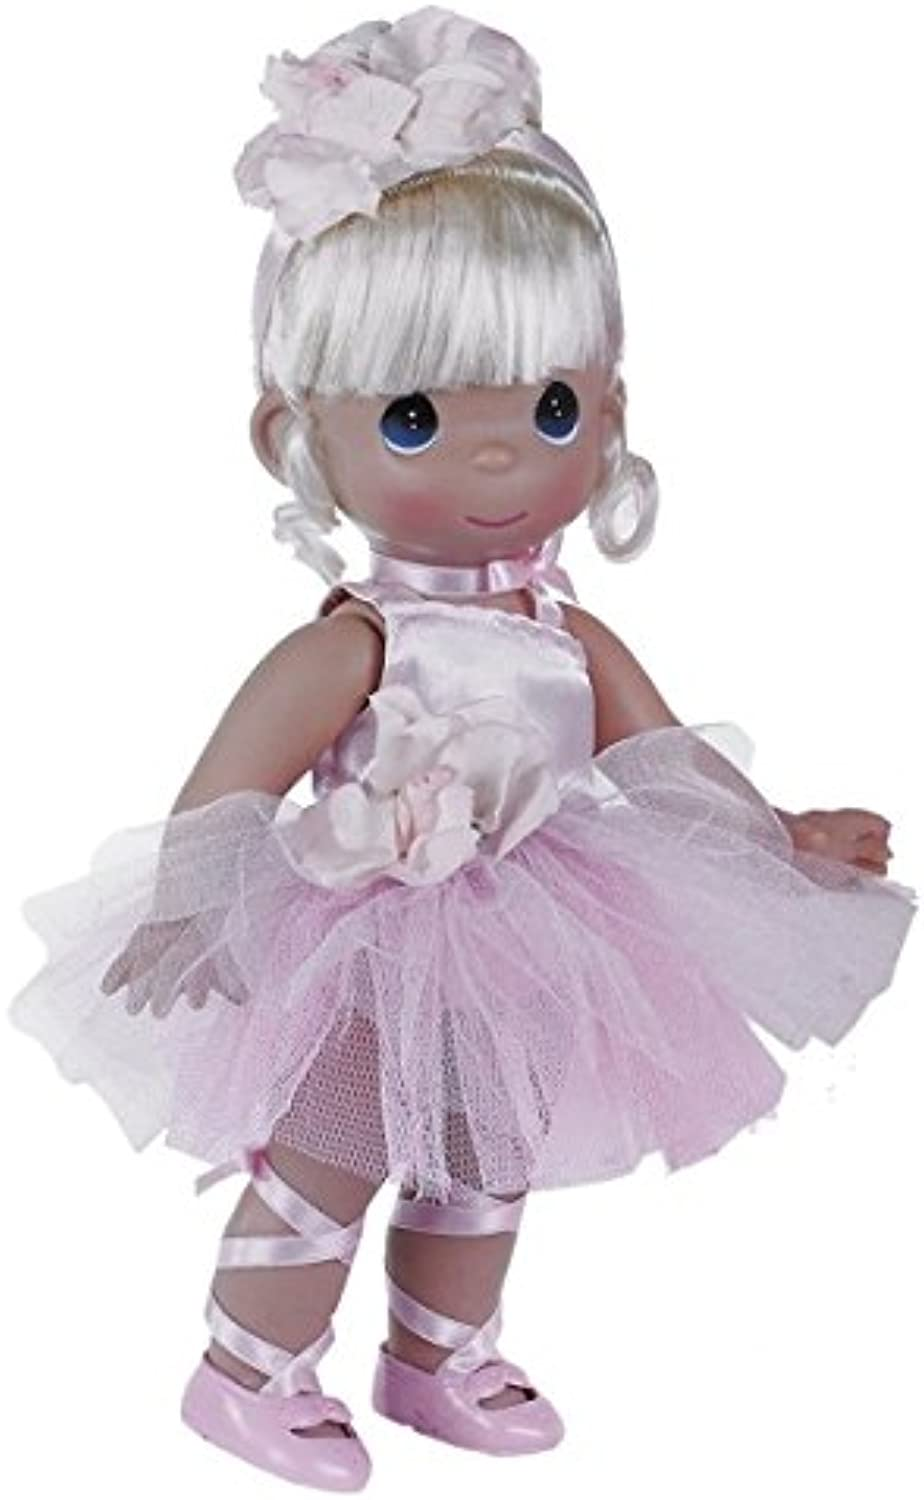 Real Life Baby Doll, Dress Up Doll Girl Playmate Toy European and American Doll Can Dress up Gift Box, Height 45cm